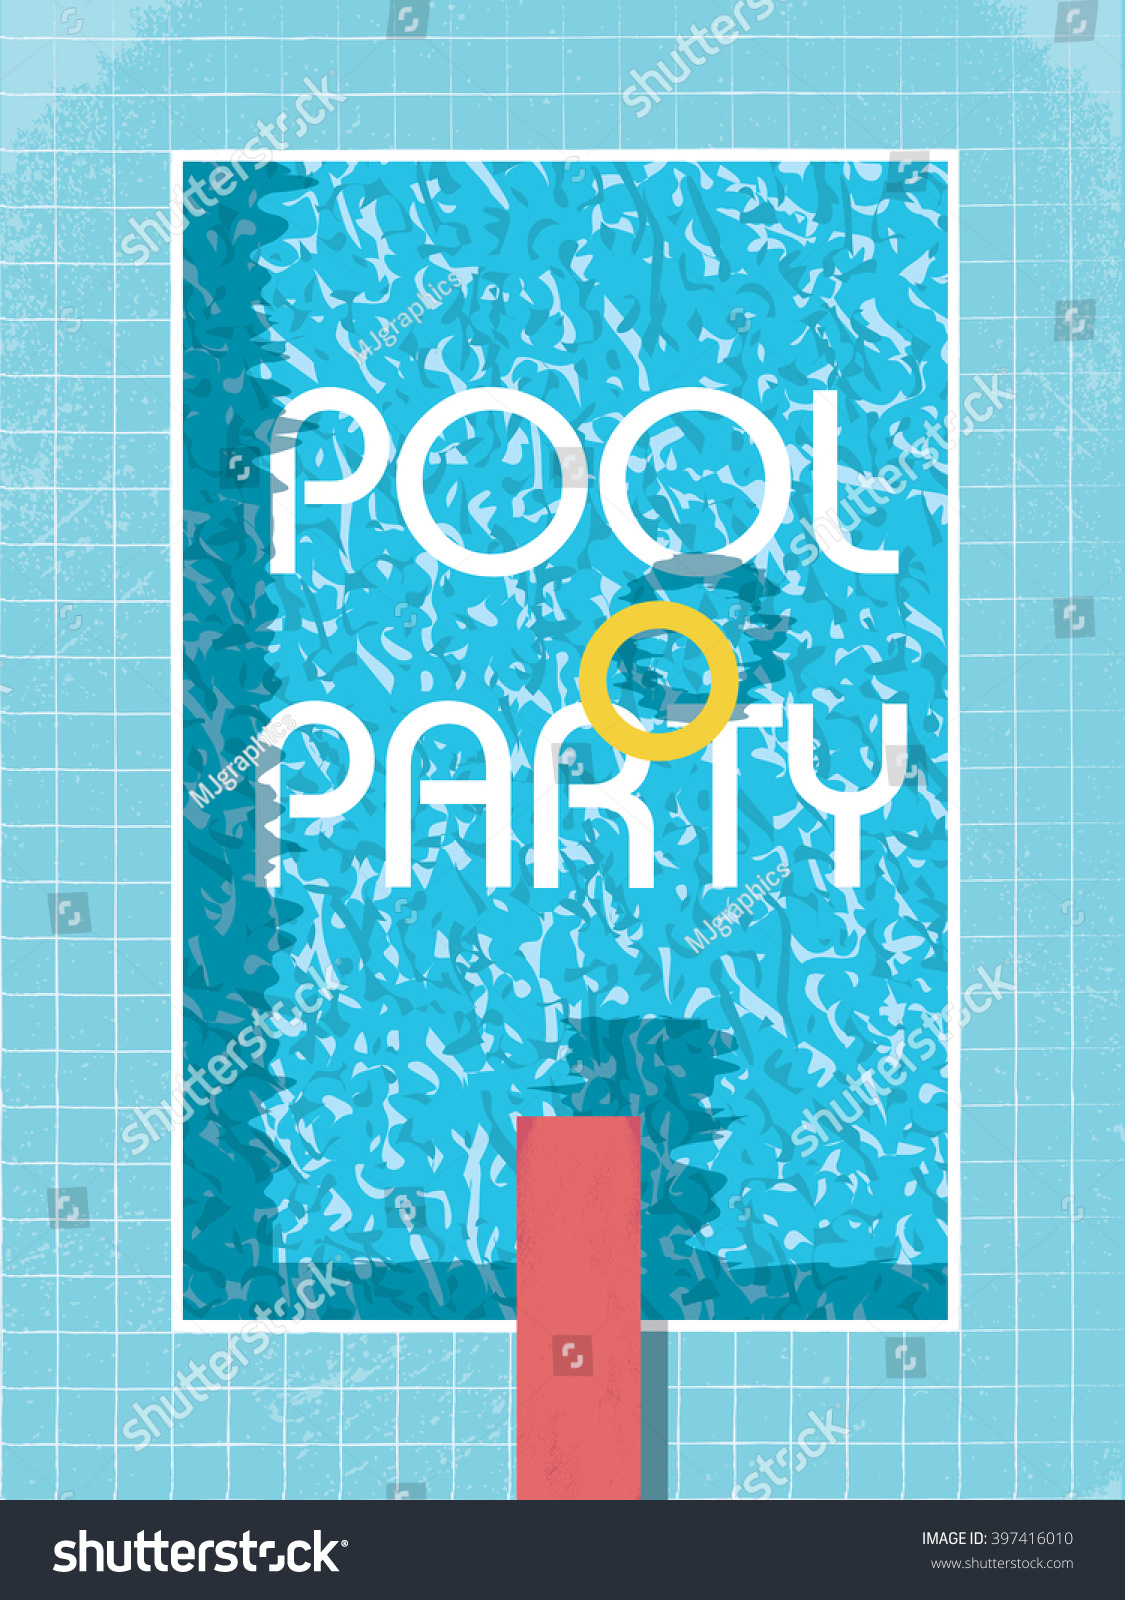 pool party invitation poster flyer leaflet のベクター画像素材